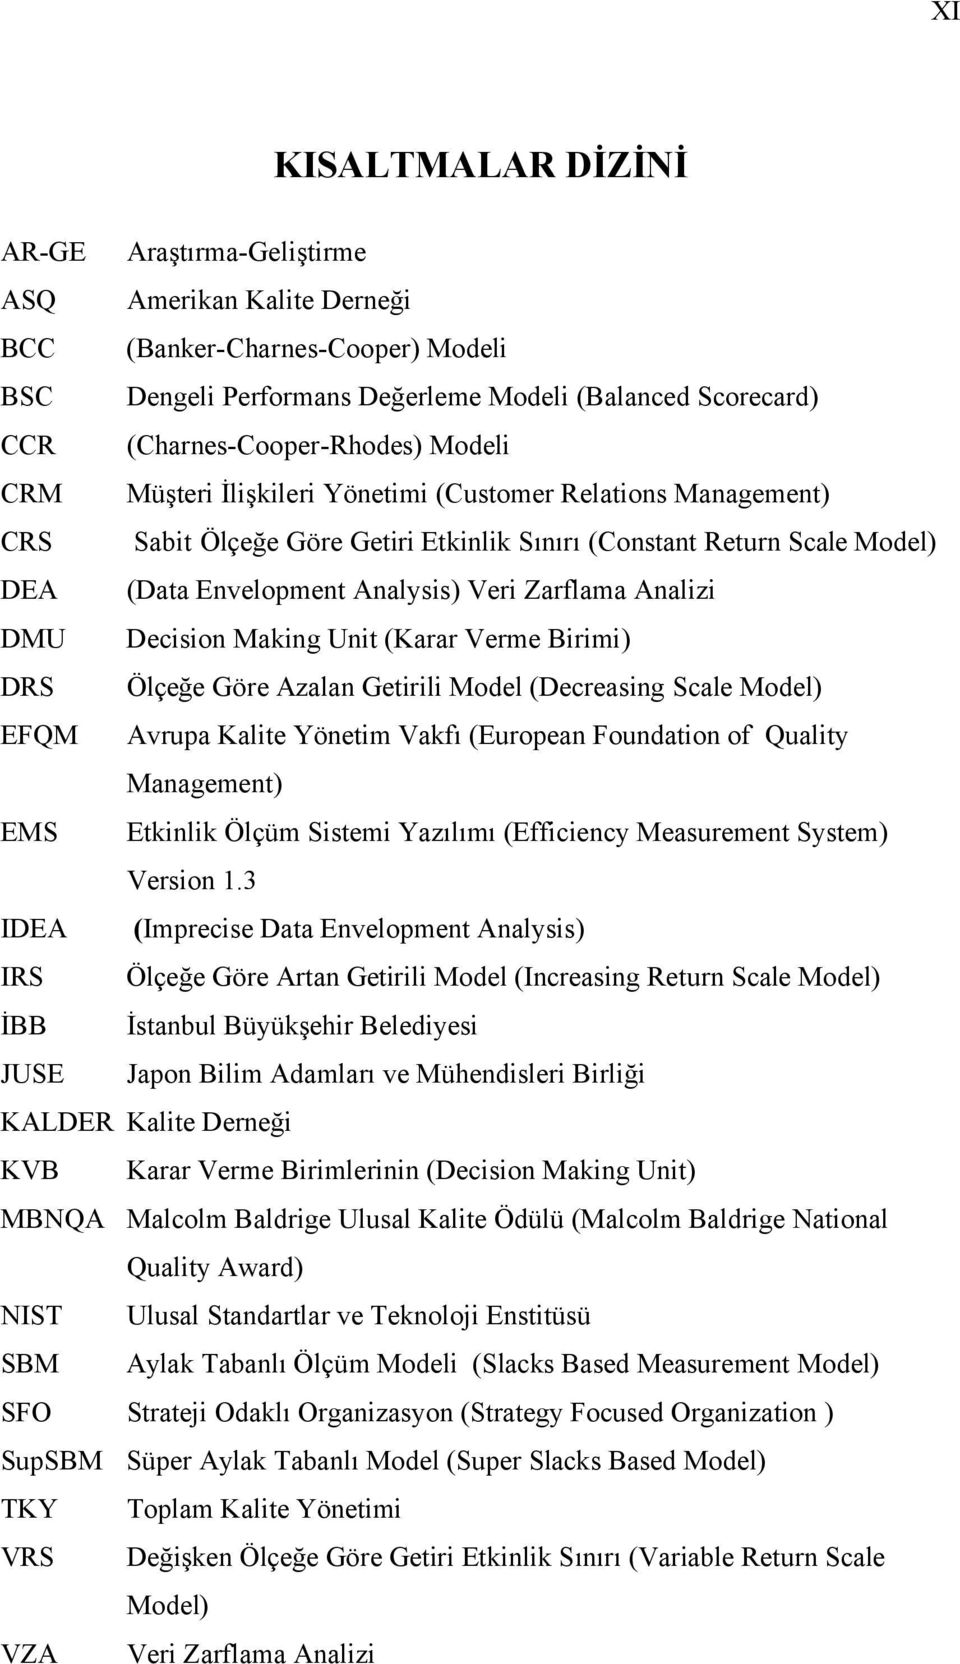 Analysis) Veri Zarflama Analizi DMU Decision Making Unit (Karar Verme Birimi) DRS Ölçeğe Göre Azalan Getirili Model (Decreasing Scale Model) EFQM Avrupa Kalite Yönetim Vakfı (European Foundation of